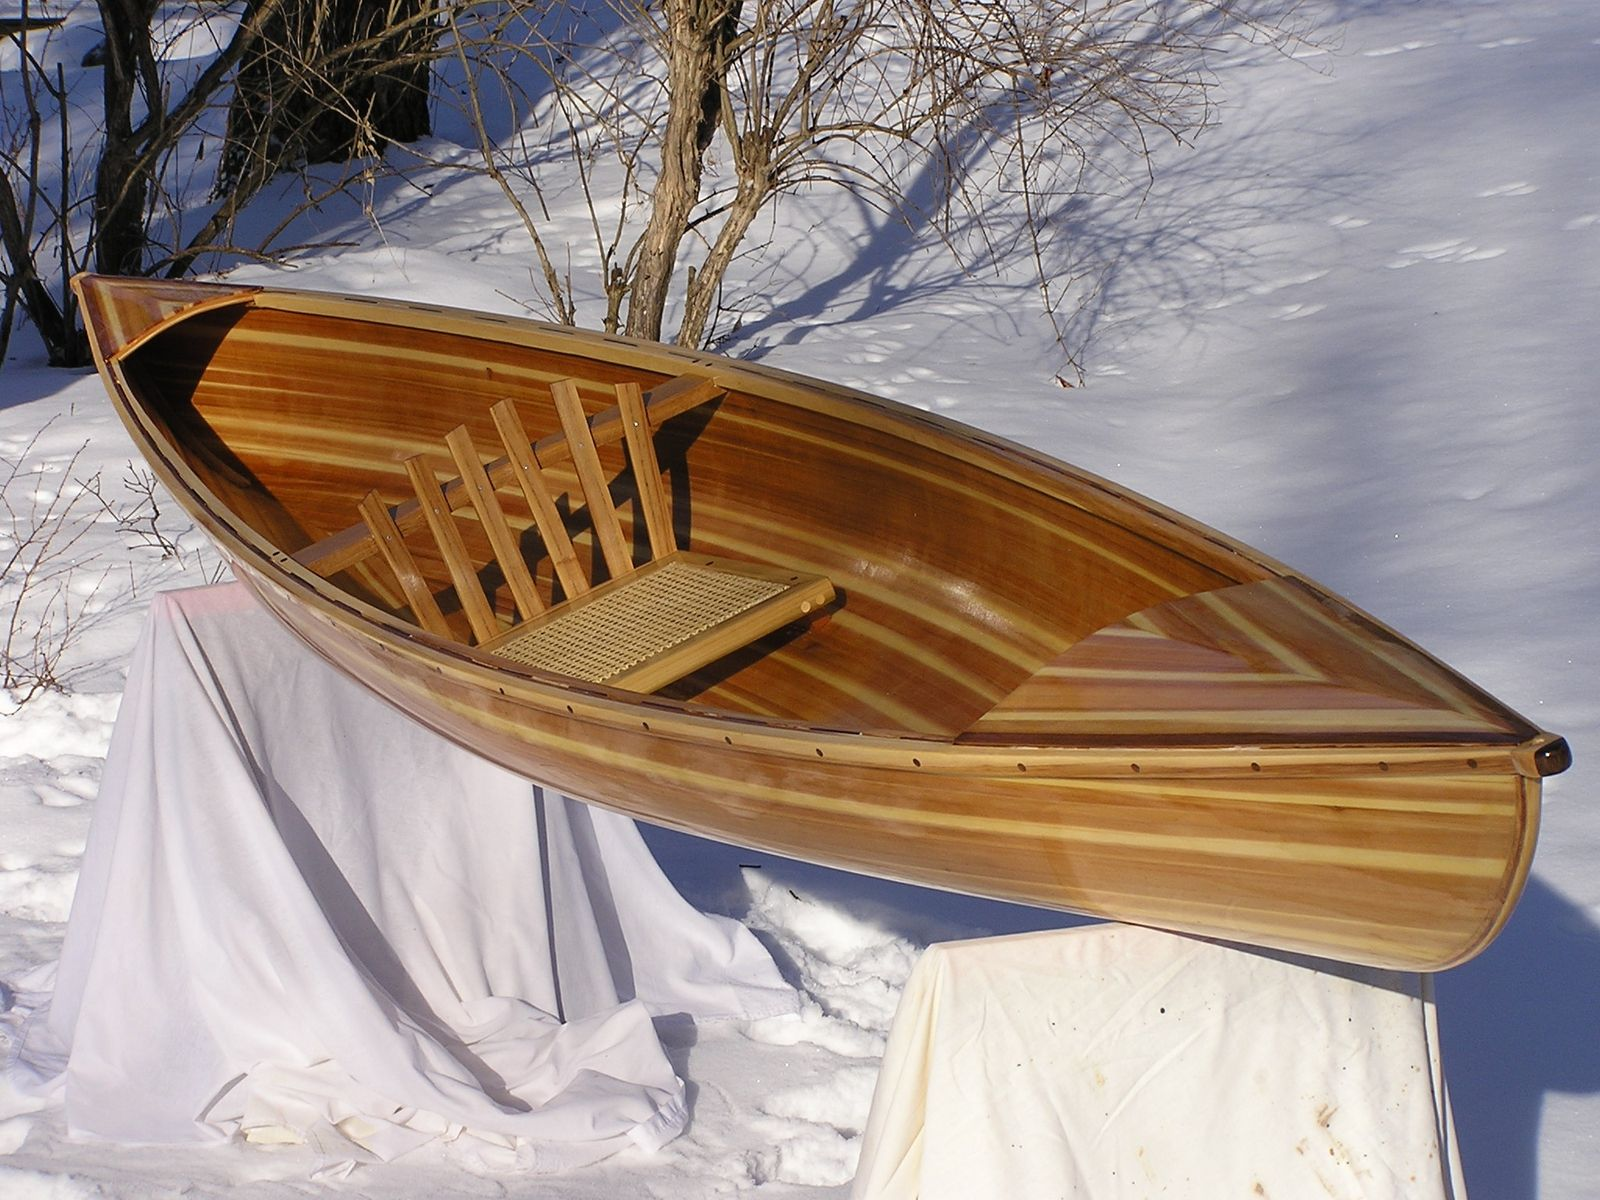 Hot foam strip canoe